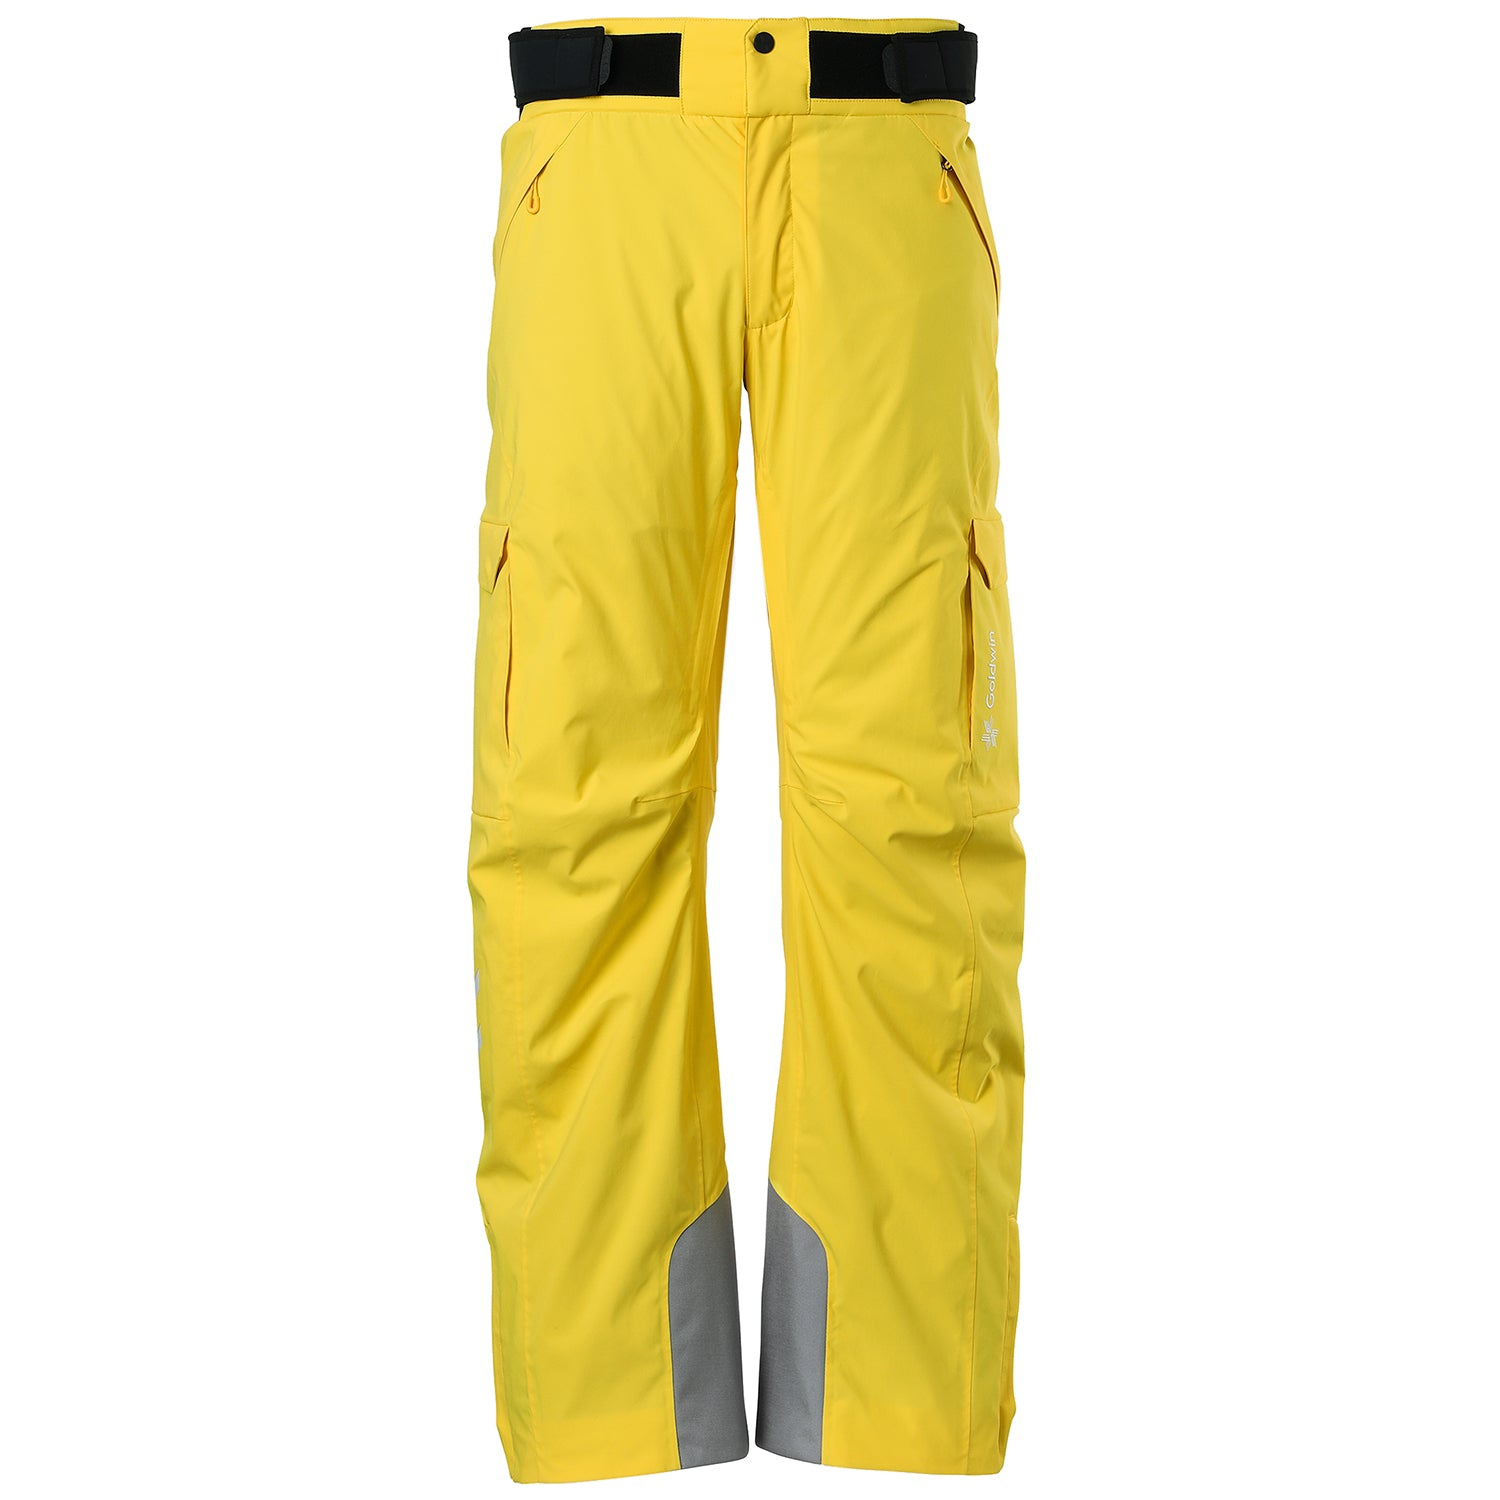 Men's Atlas Pants